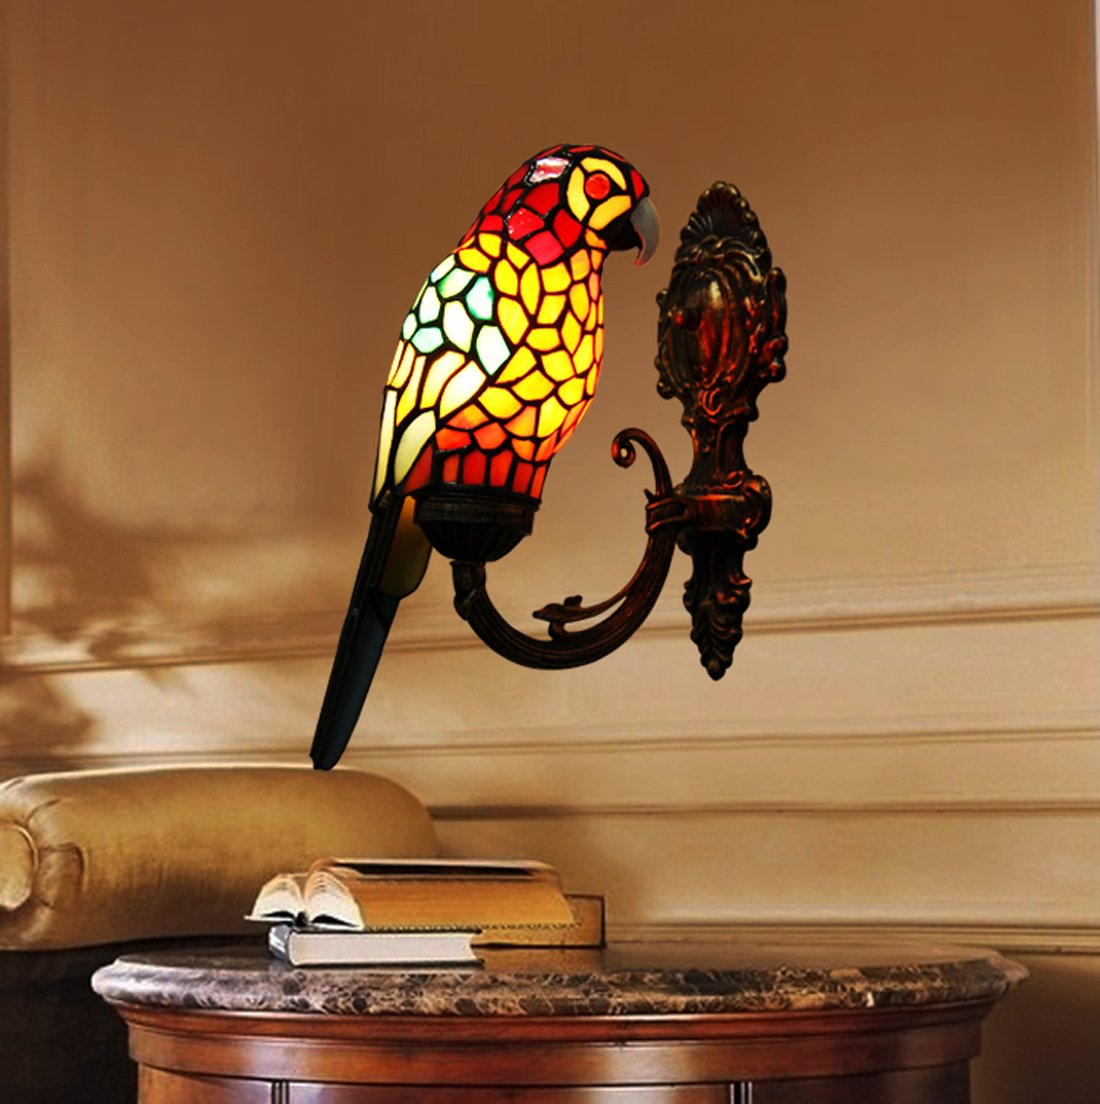 Makenier Vintage Tiffany Style Stained Glass Red Parrot Shade Wall Lamp  Fixture     Amazon.com